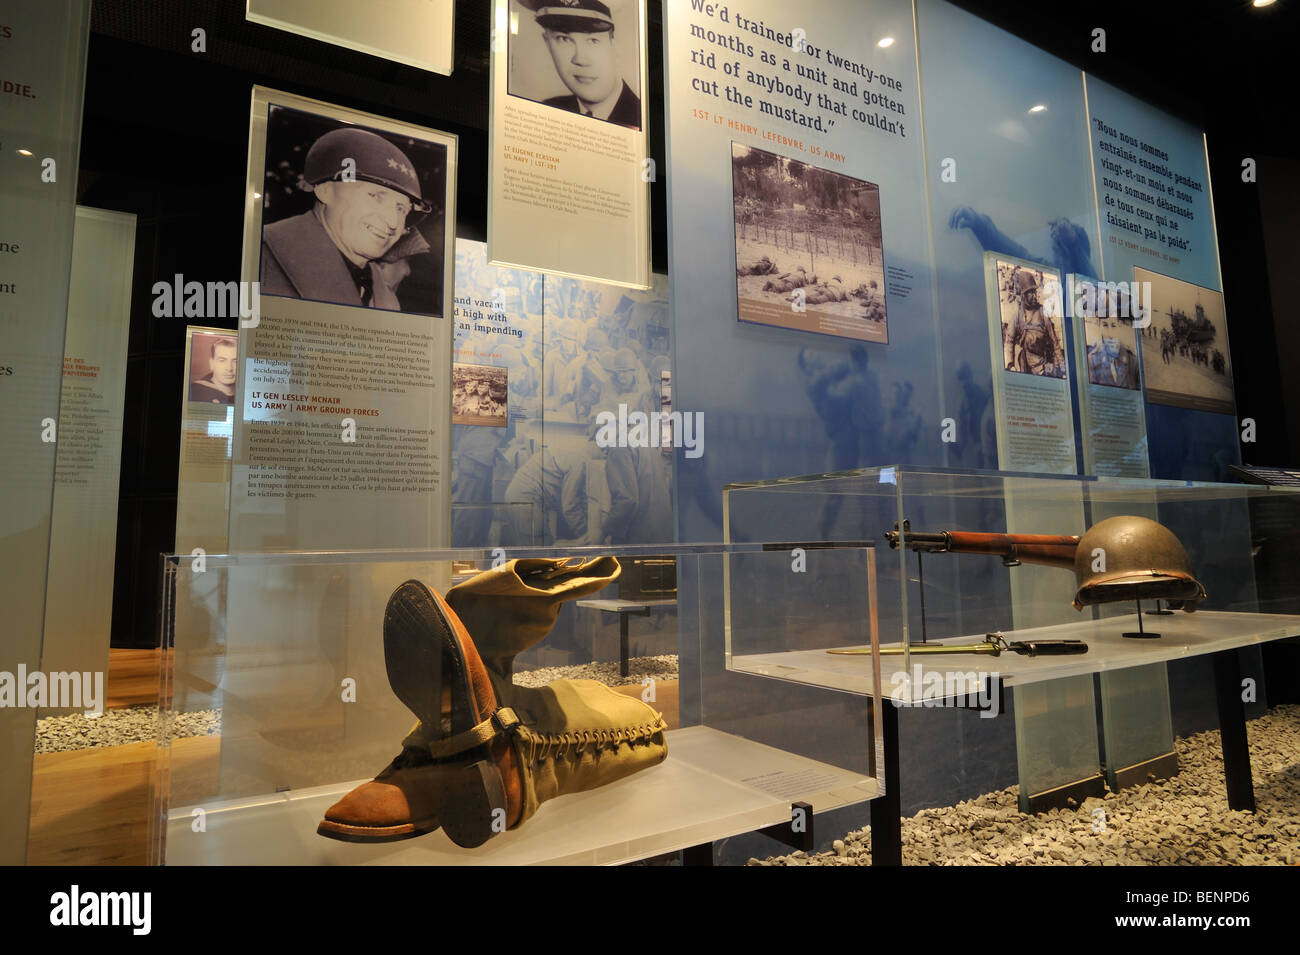 Interior of the WW2 museum at the Normandy American Cemetery and Memorial in Colleville-sur-Mer, Normandy, France Stock Photo